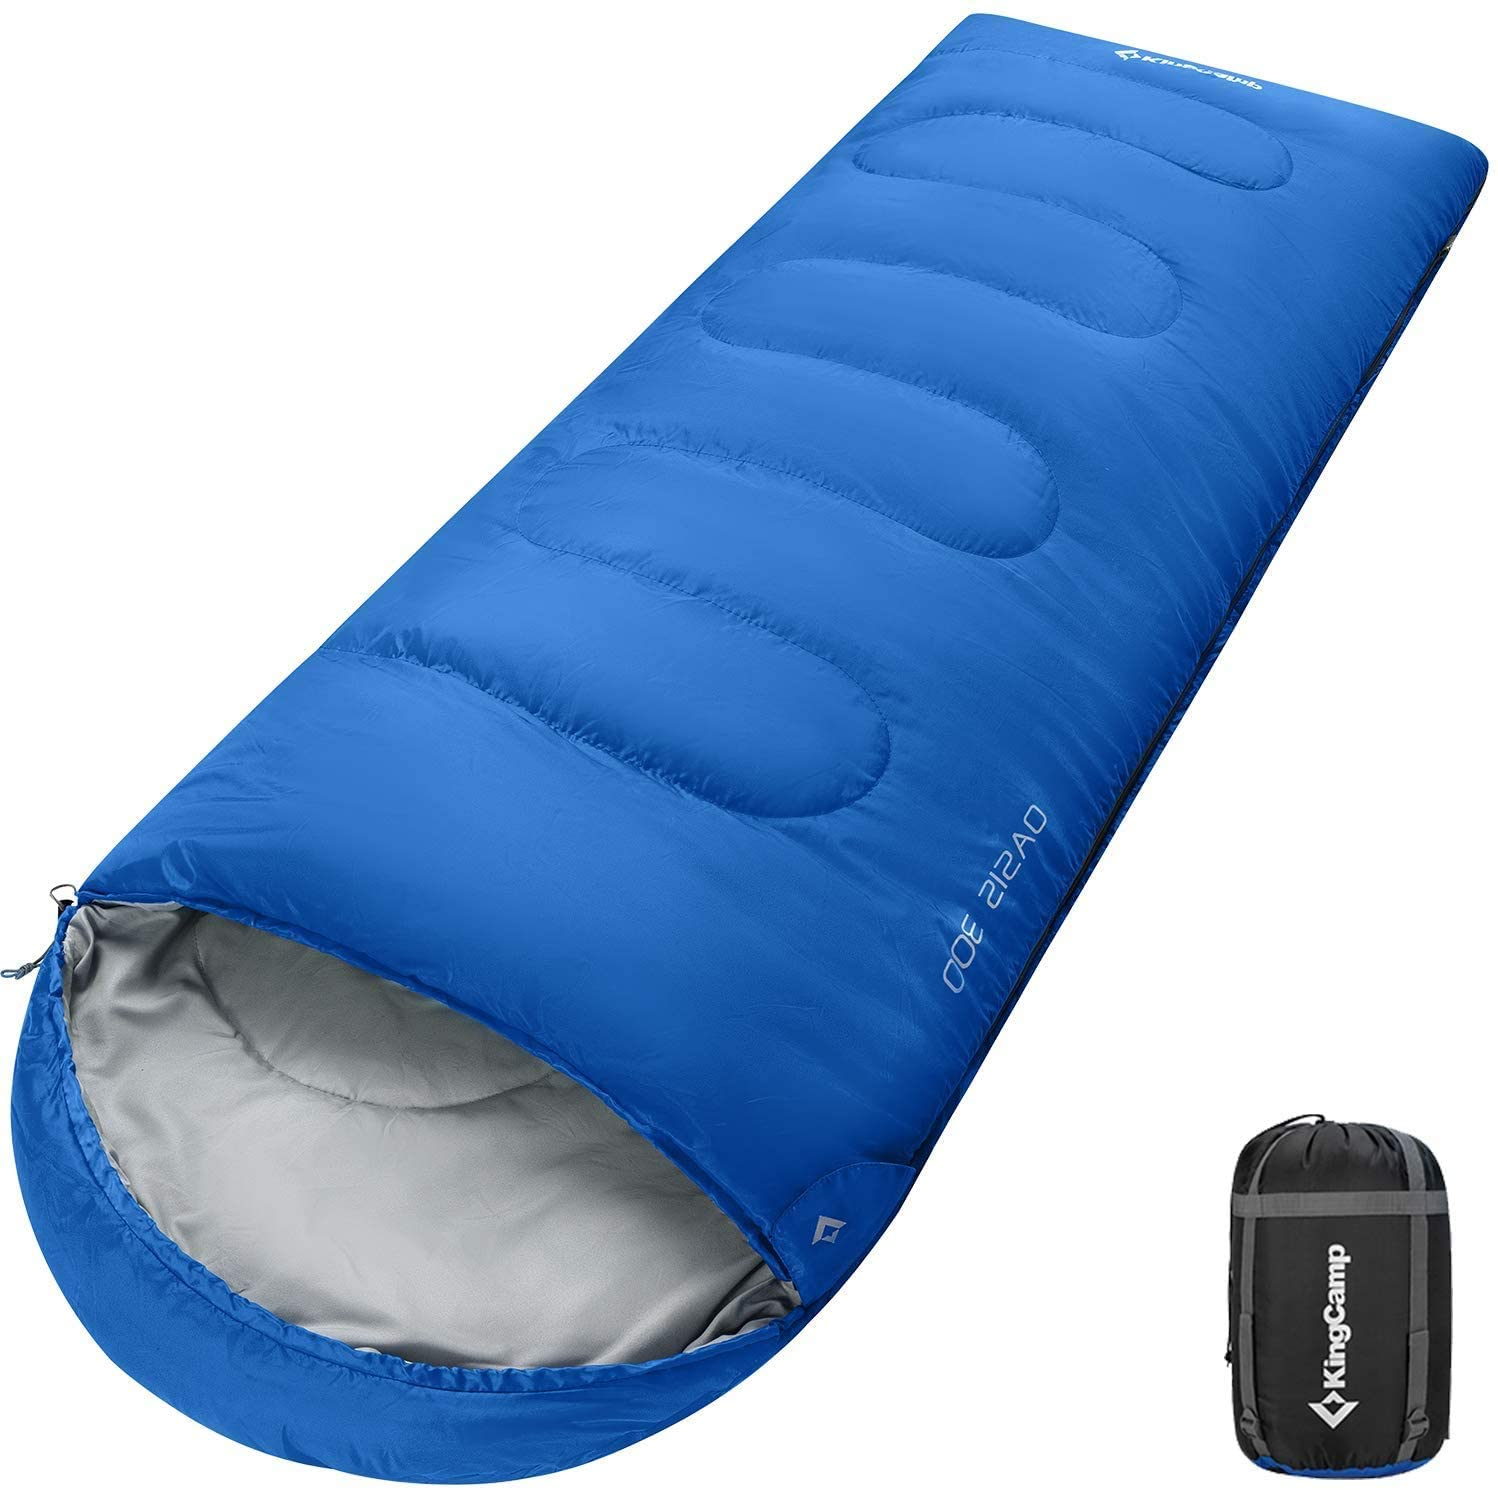 KingCamp XL 4 Season Warm Sleeping Bag for Adults Women Men Youth Camping Hiking Backpacking, Extreme Temperature 8.6℉, 87